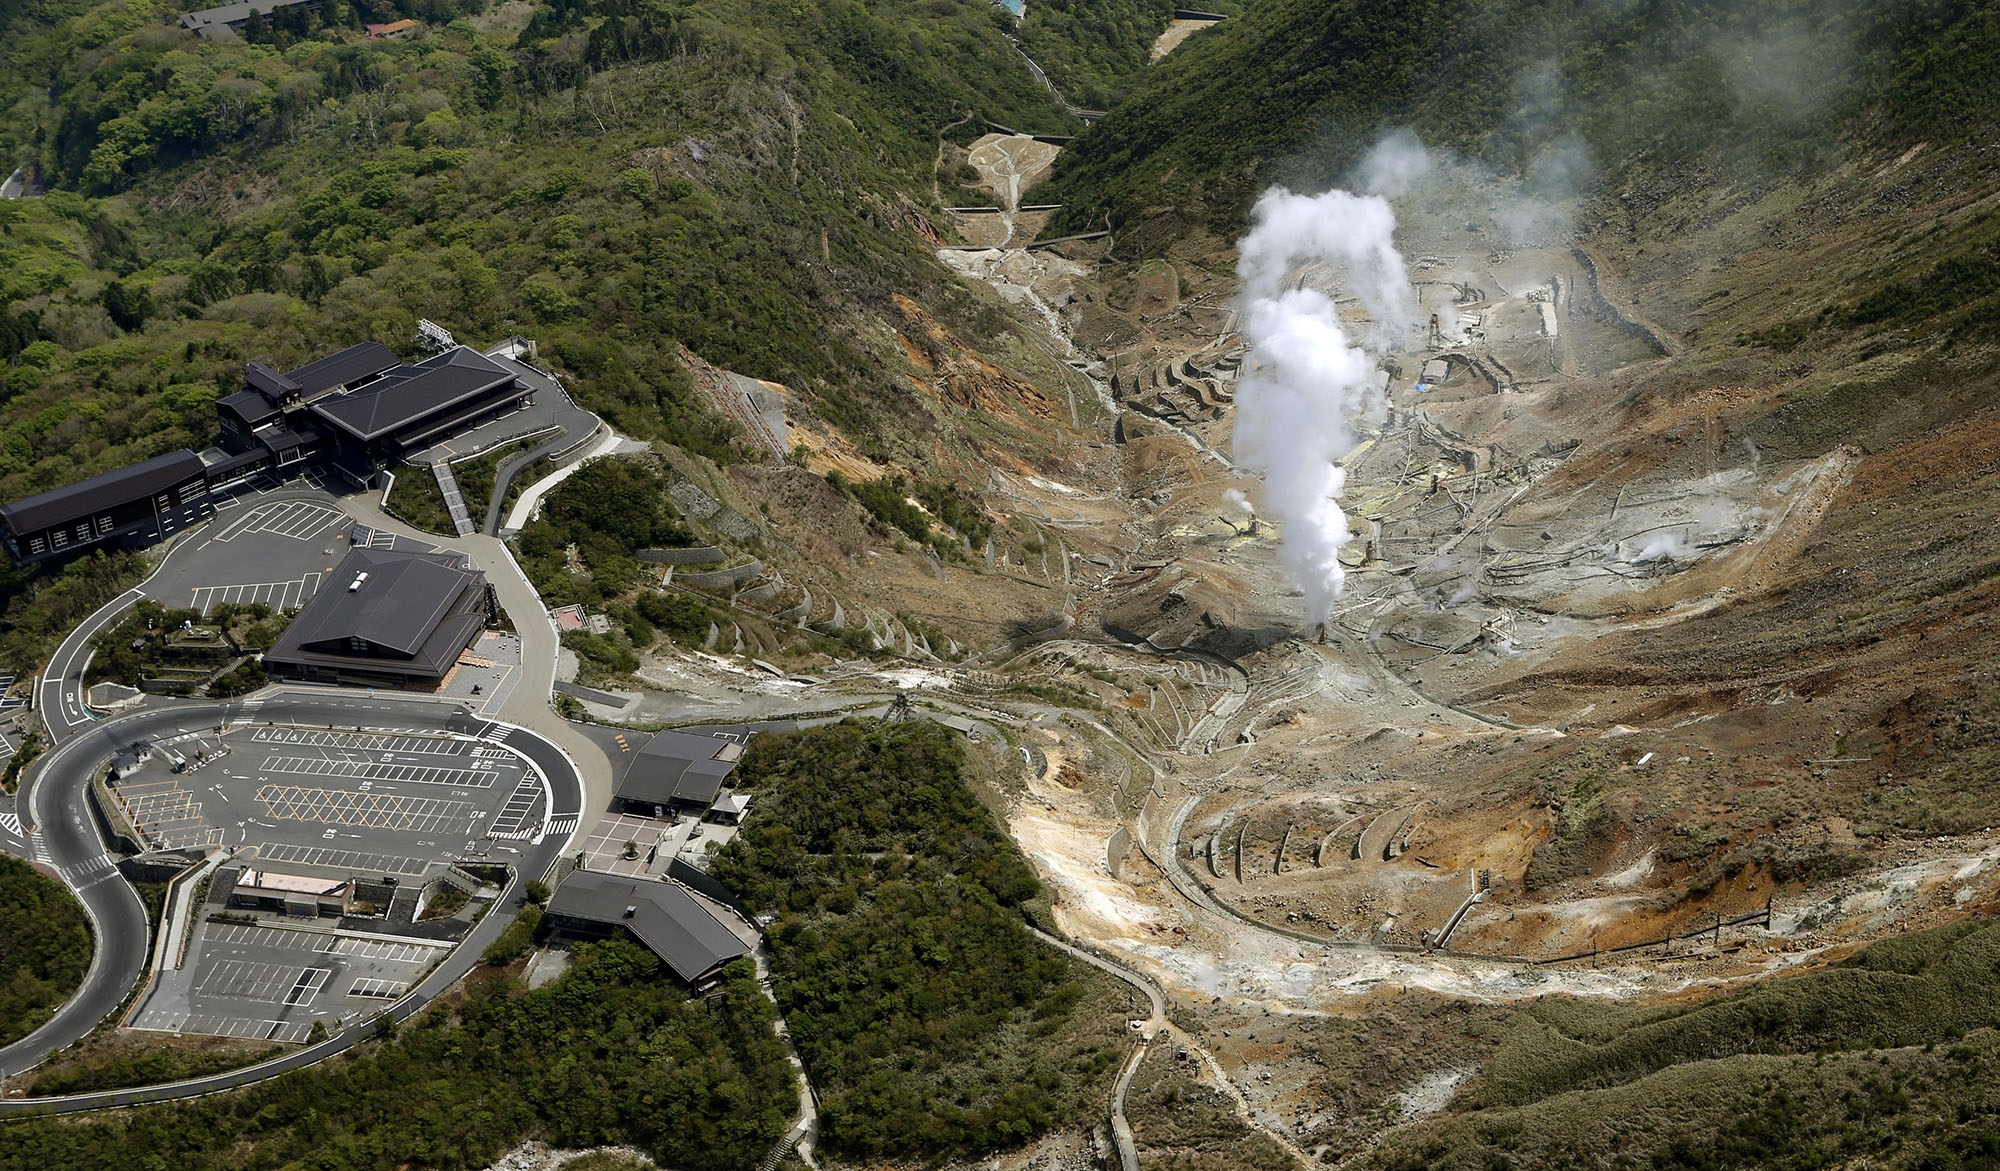 An aerial photo taken from Kyodo News helicoptor shows steam rising the ground in Hakone-machi, Kanagawa Prefecture. The Japan Meterological Agency said the number of volcanic earthquakes in Hakone on Tuesday reached 116, the highest ever recorded in one day.